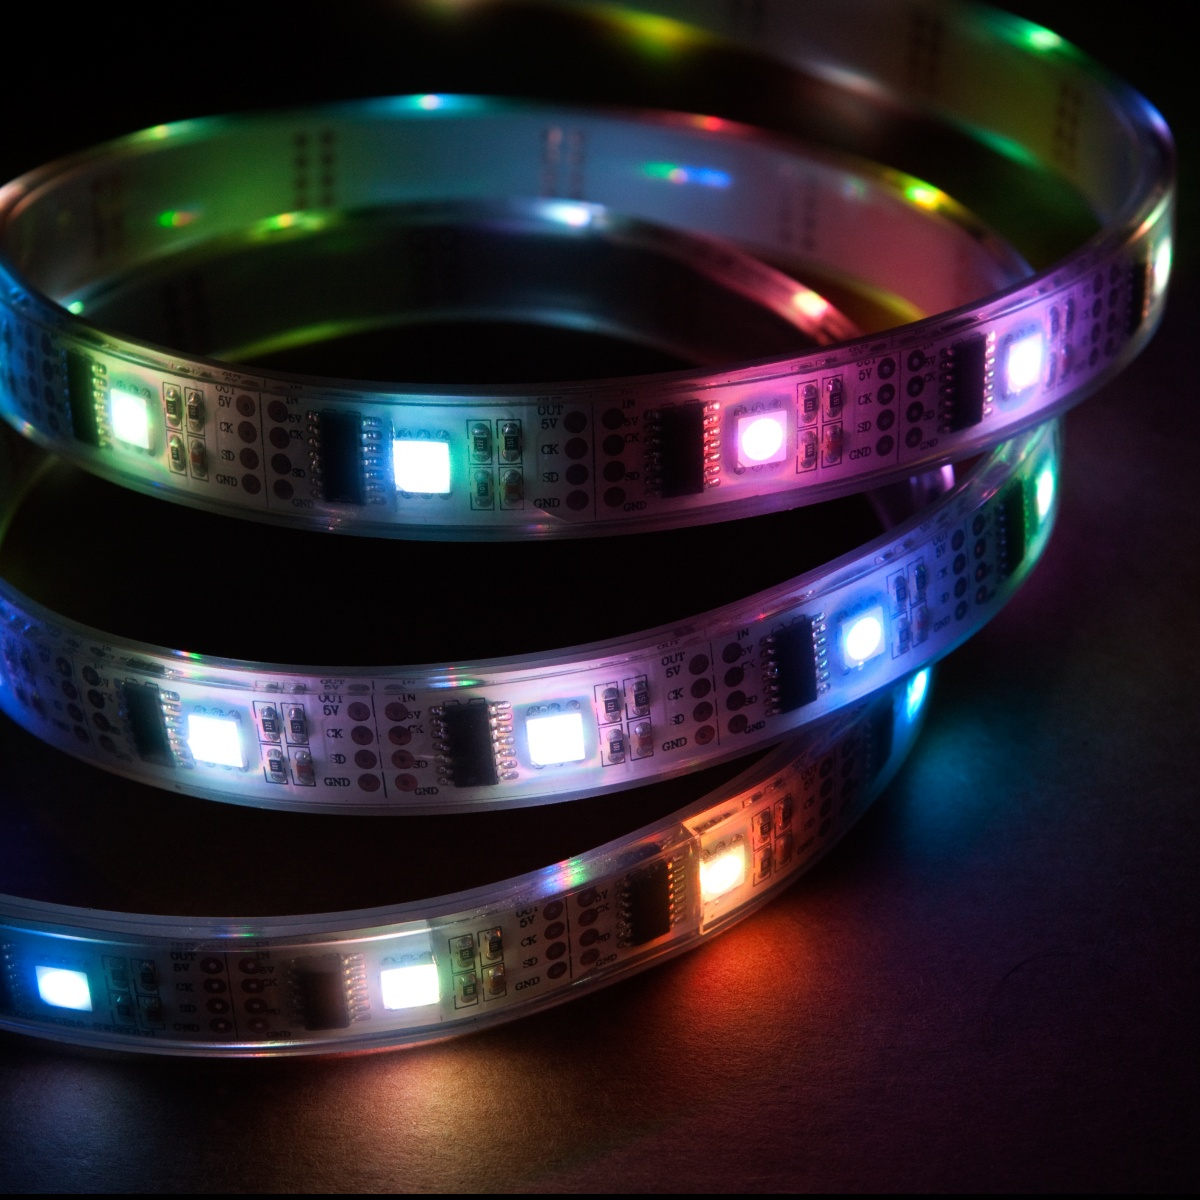 Led Strip Waterproof 5m Addressable 24 Bit Rgb Led Strip Waterproof Ws2801 32 Pixels Per Meter